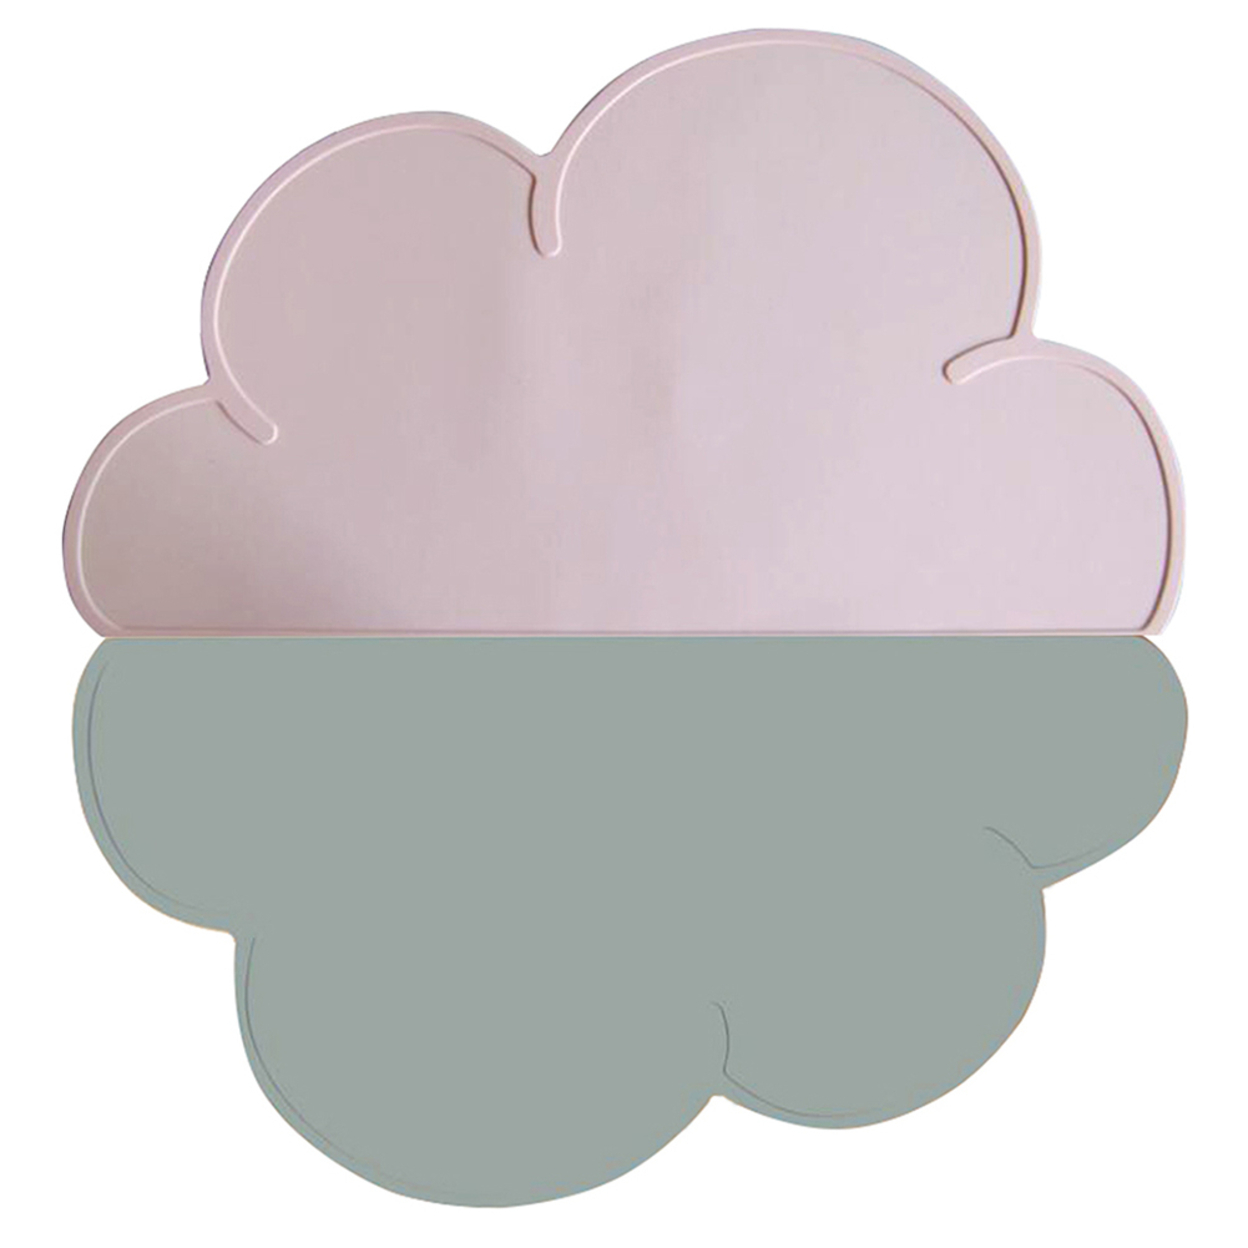 Jypc Kids Silicone Cloud Placemat Dinnerware Table Mat, Washable Portable Place Mats, Pink/Grey 59c4be3be2246139c869d4c8